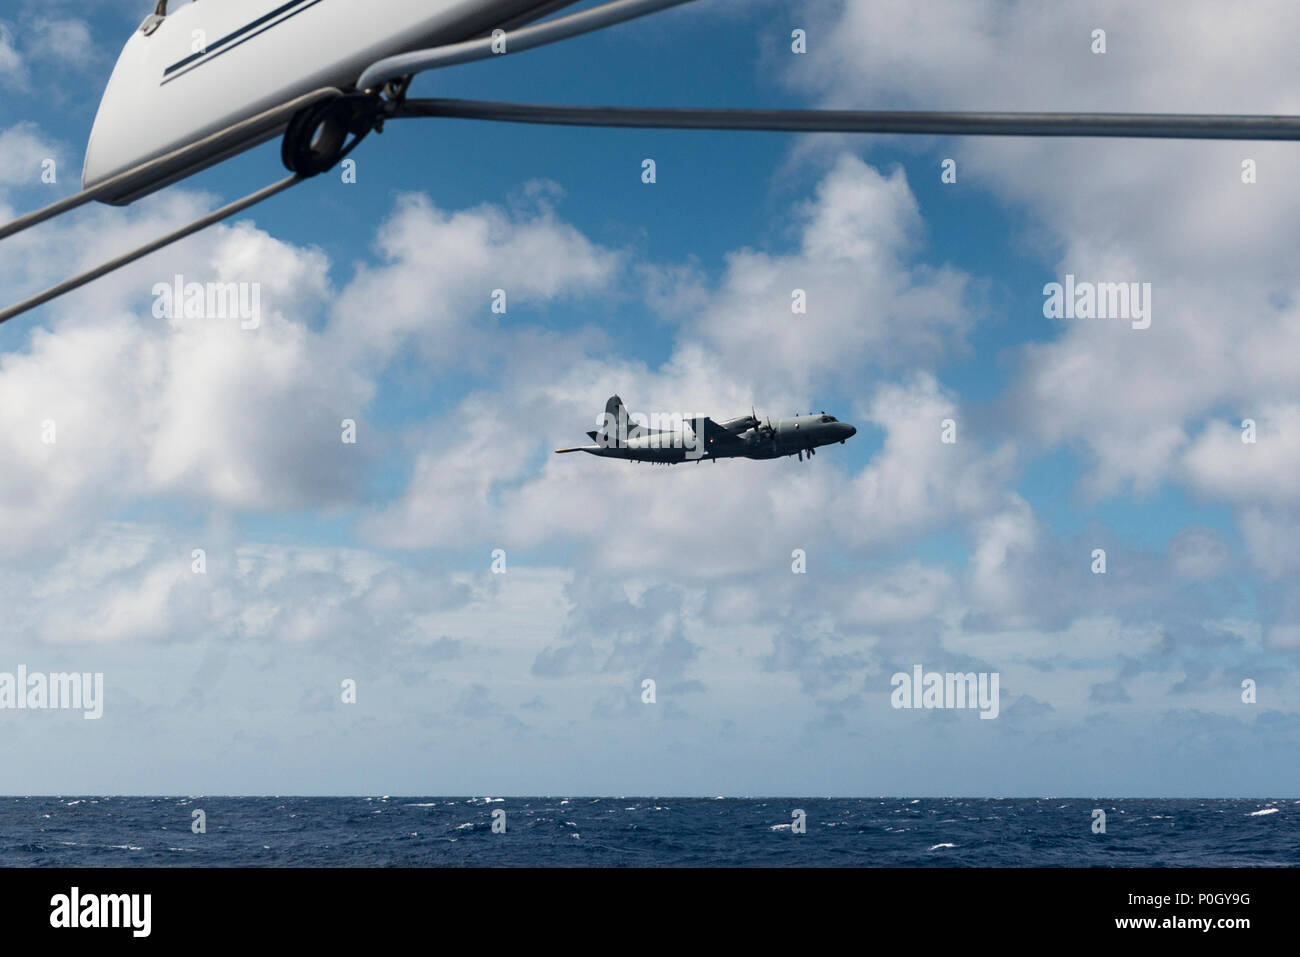 A Canadian aeroplane on a training flight flying at low level alongside a yacht sailing offshore in the North Atlantic. Stock Photo